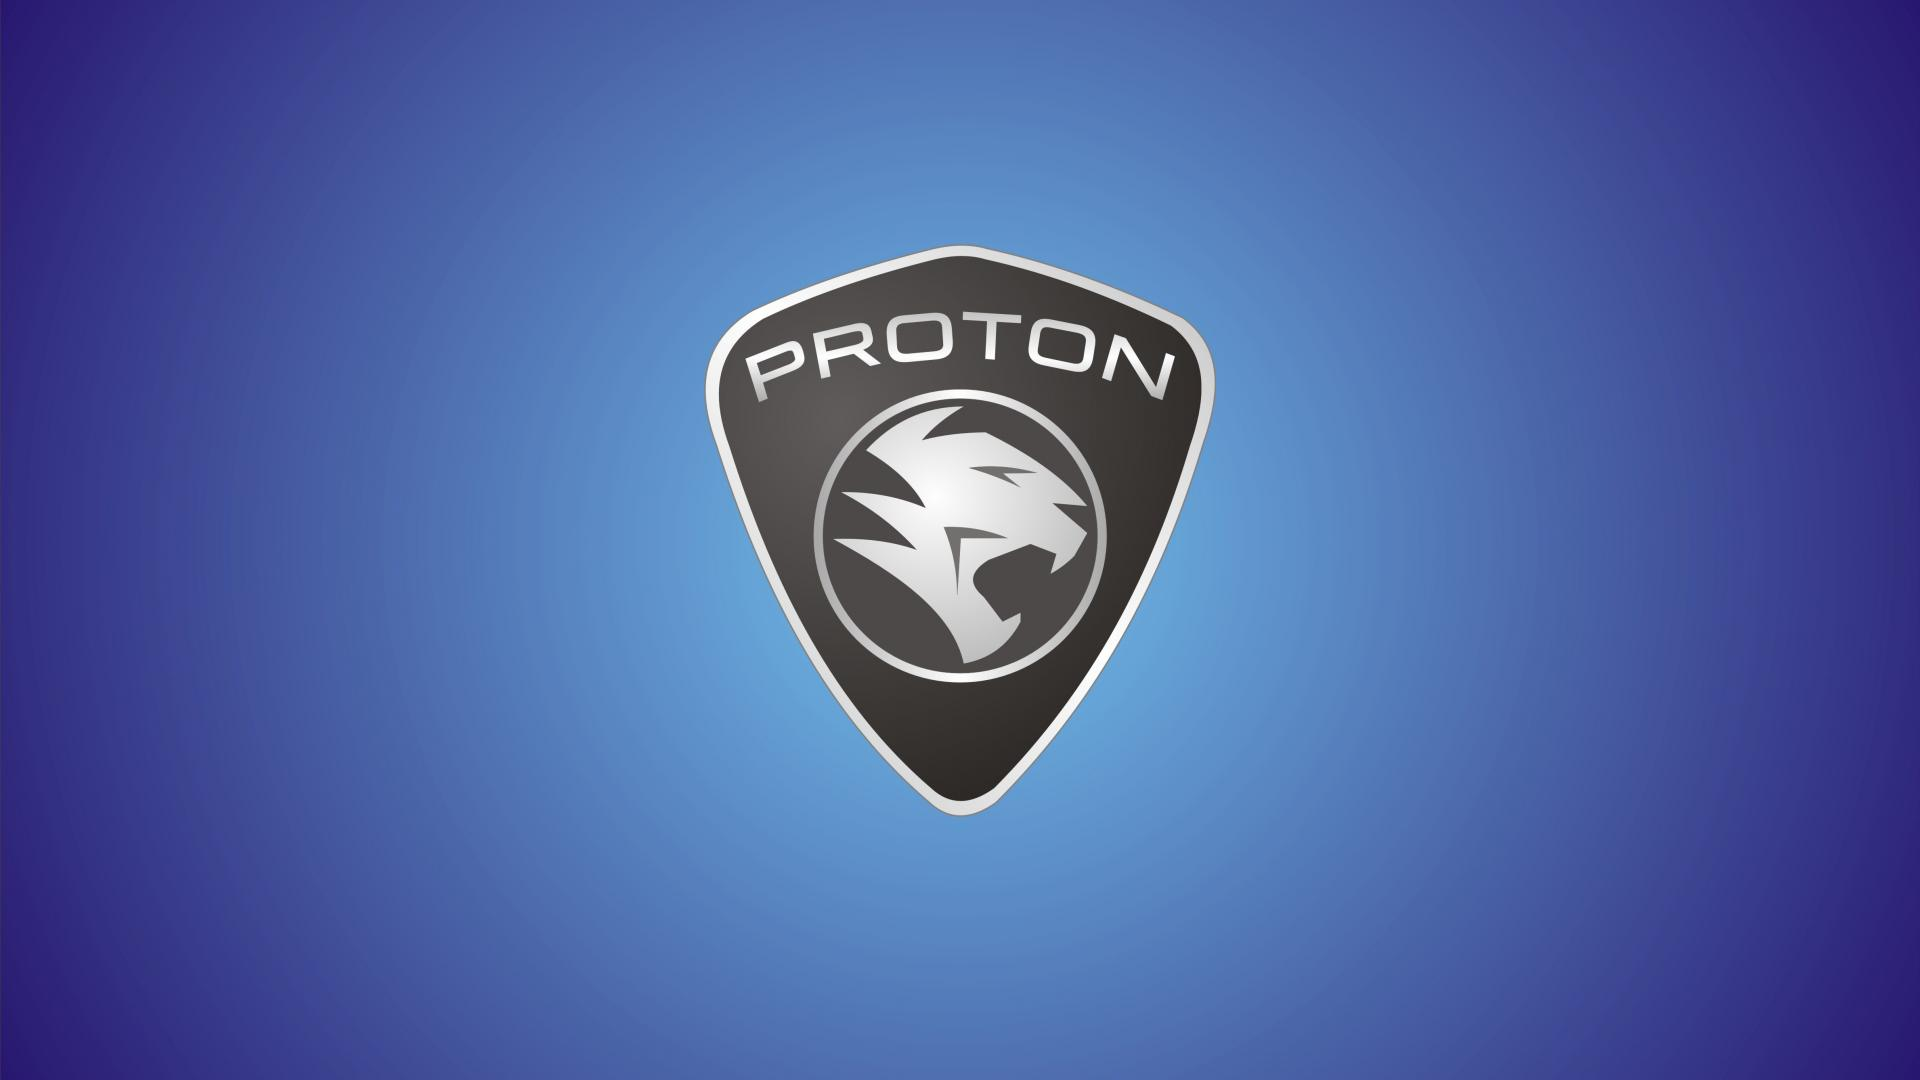 1920x1080 - Proton Wallpapers 11